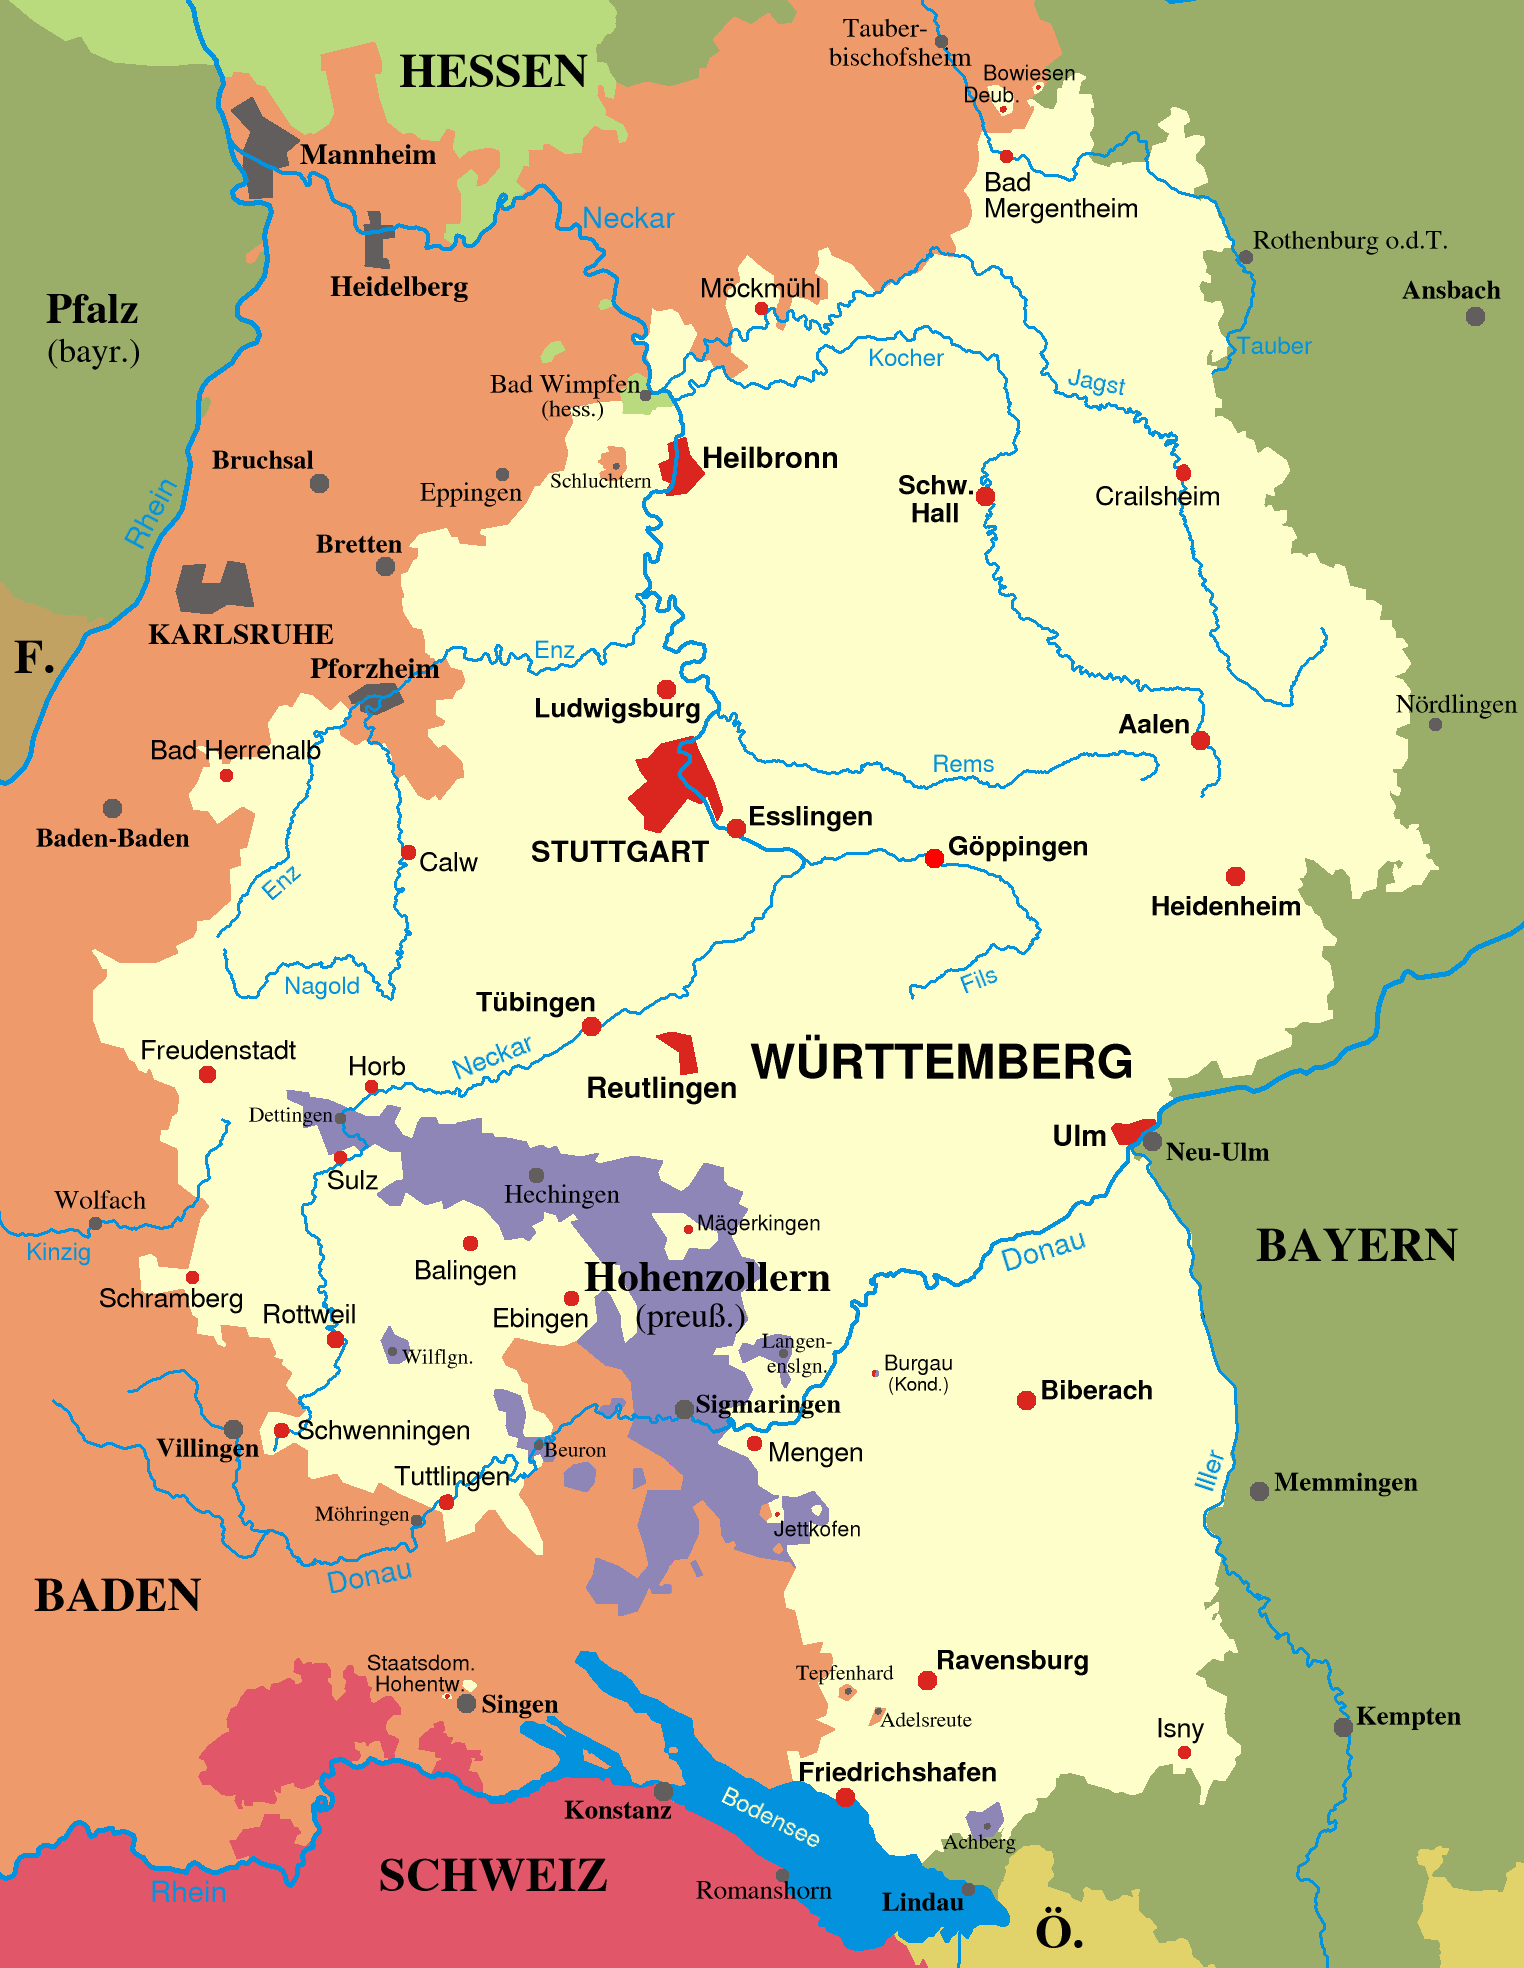 Map of Württemberg and Baden from 1810 1945